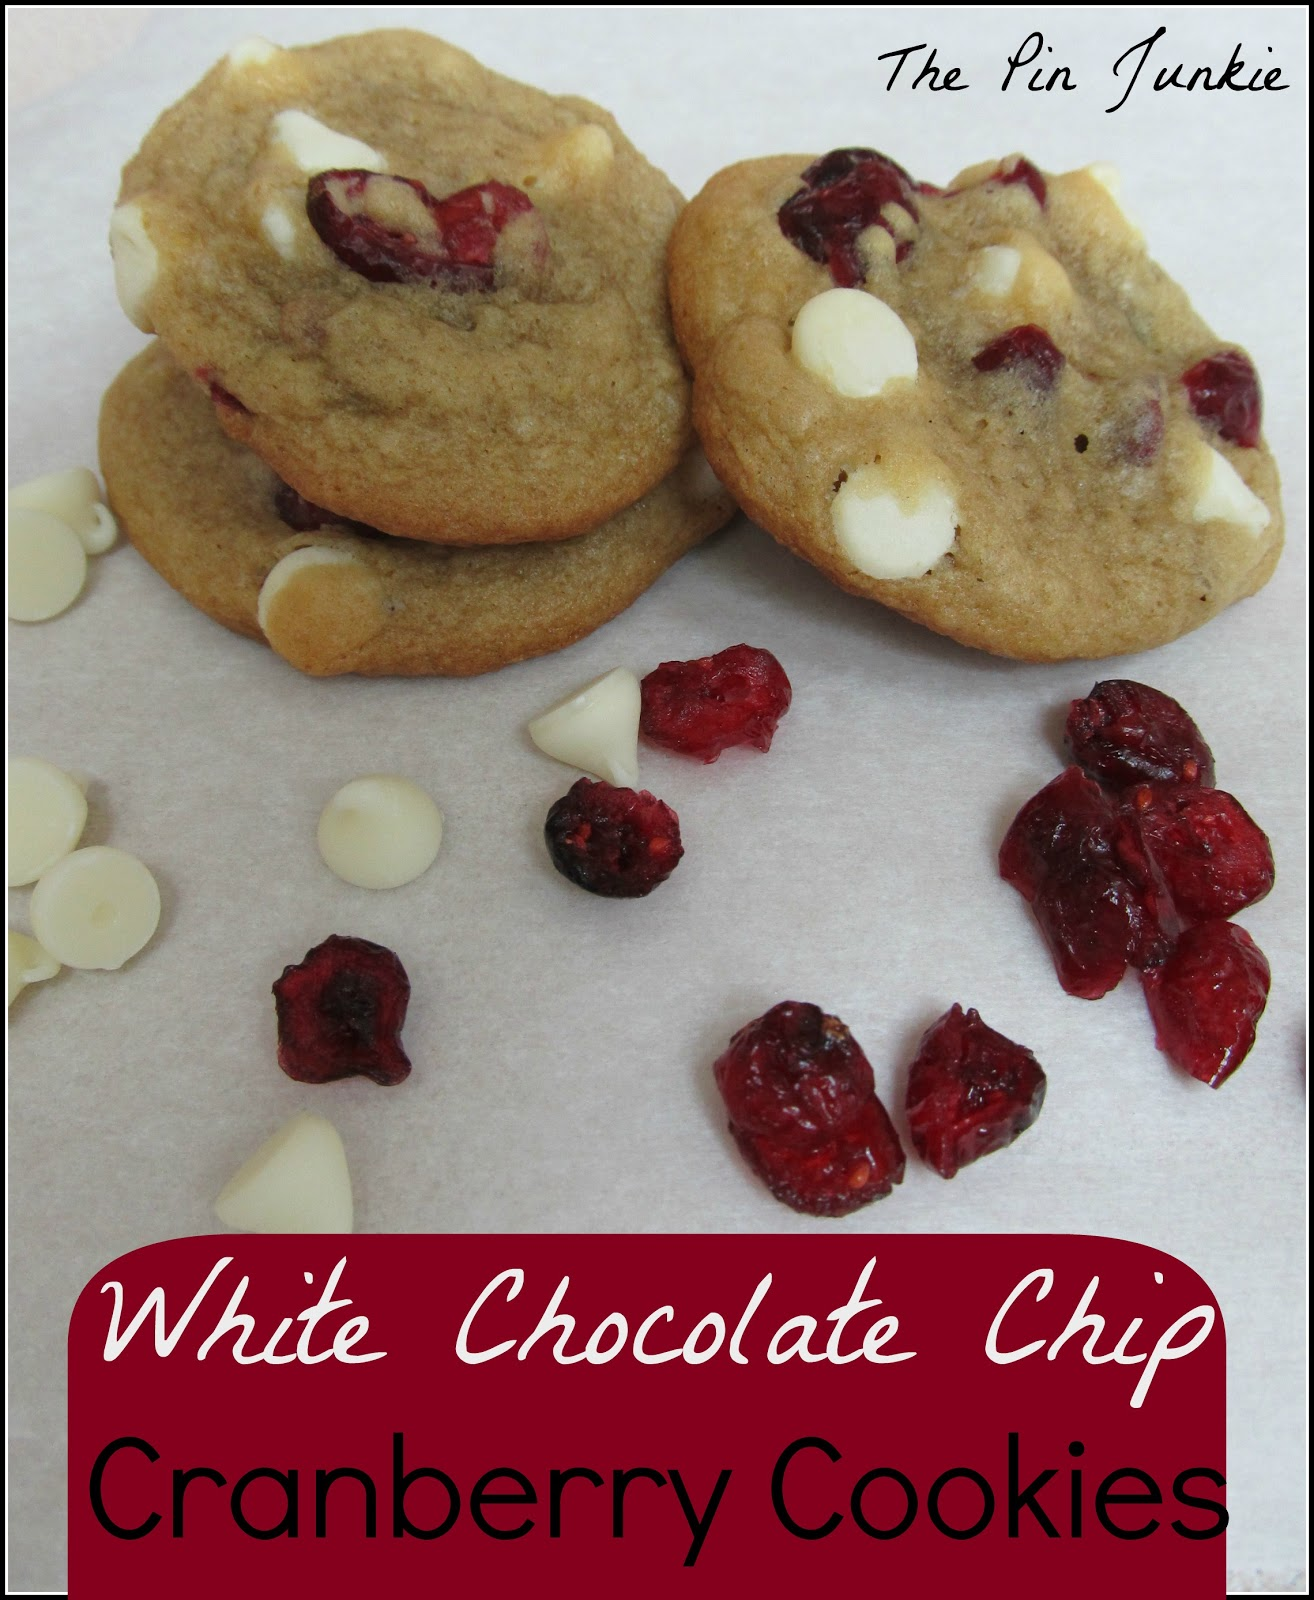 The Pin Junkie: White Chocolate Cranberry Cookies